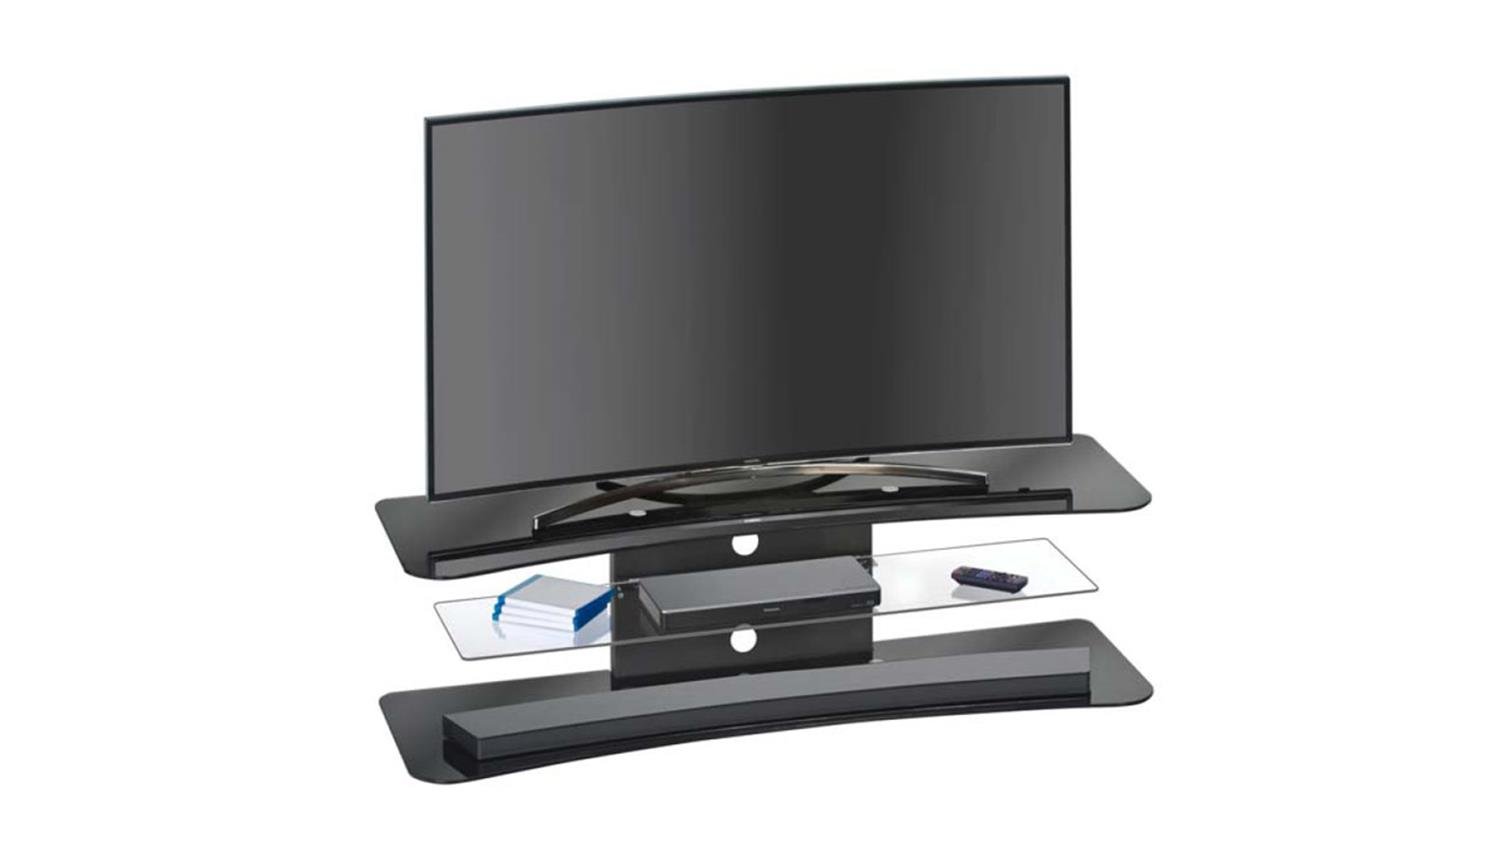 tv rack 1625 maja schwarzglas design rundung kabelf hrung. Black Bedroom Furniture Sets. Home Design Ideas